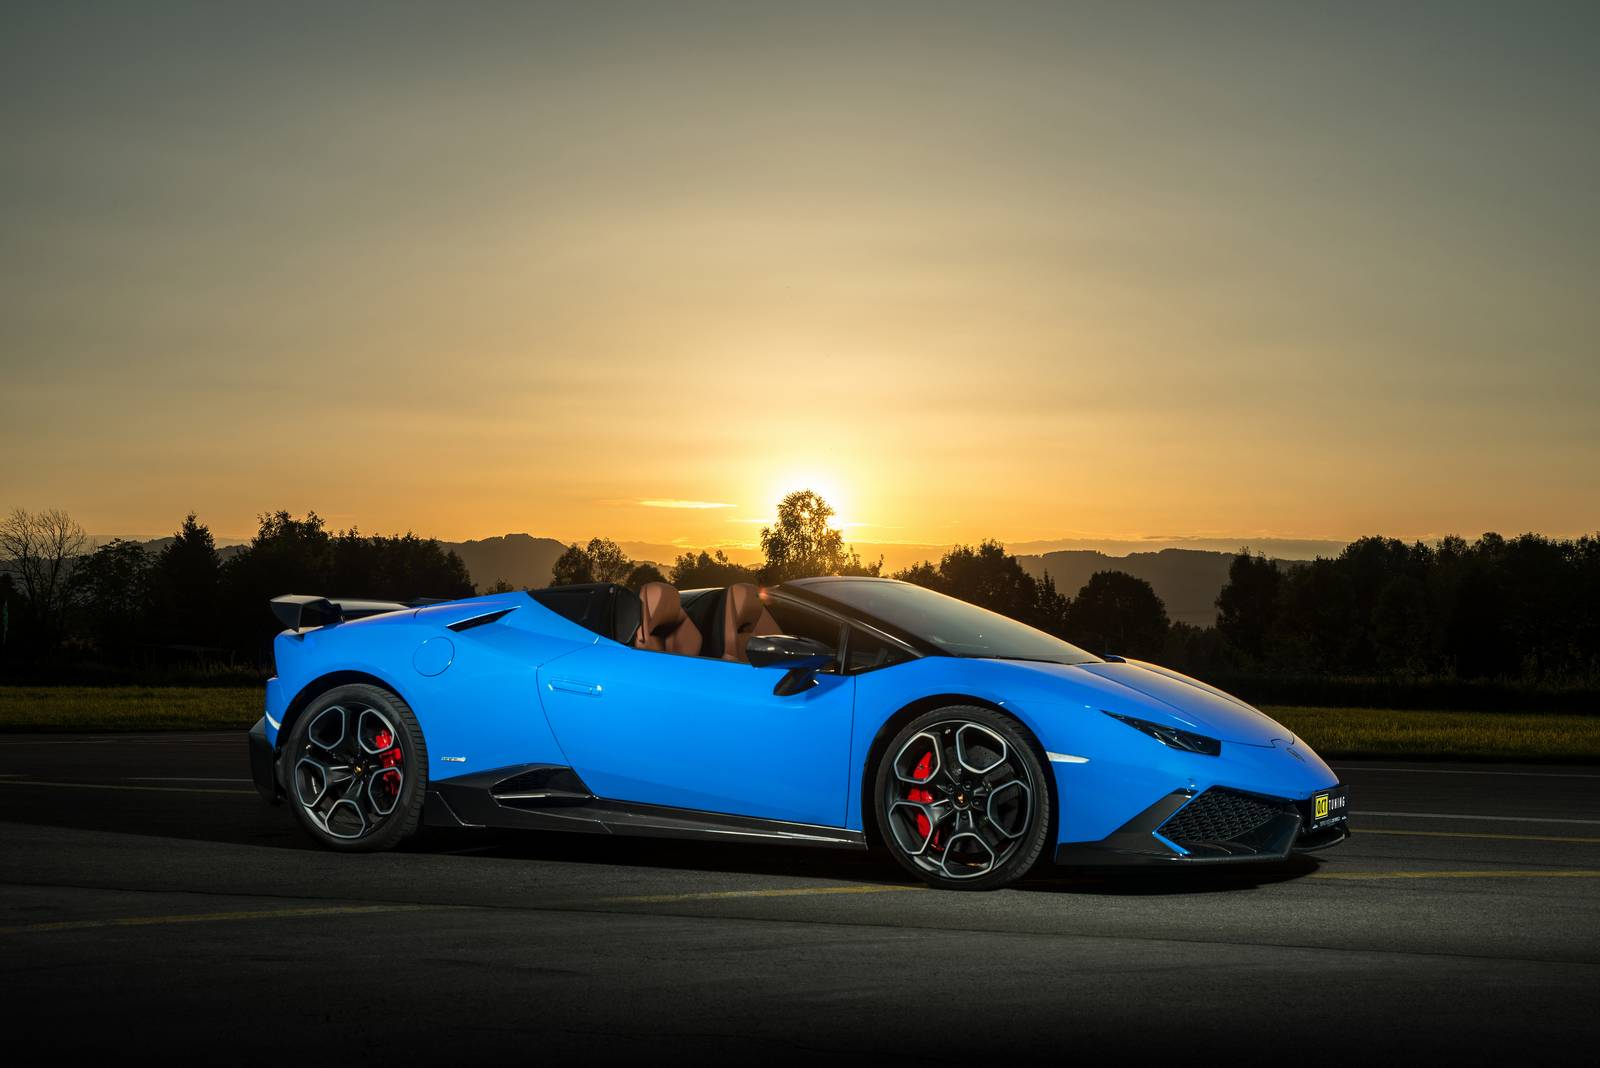 Official 805hp Lamborghini Huracan Spyder By O Ct Tuning